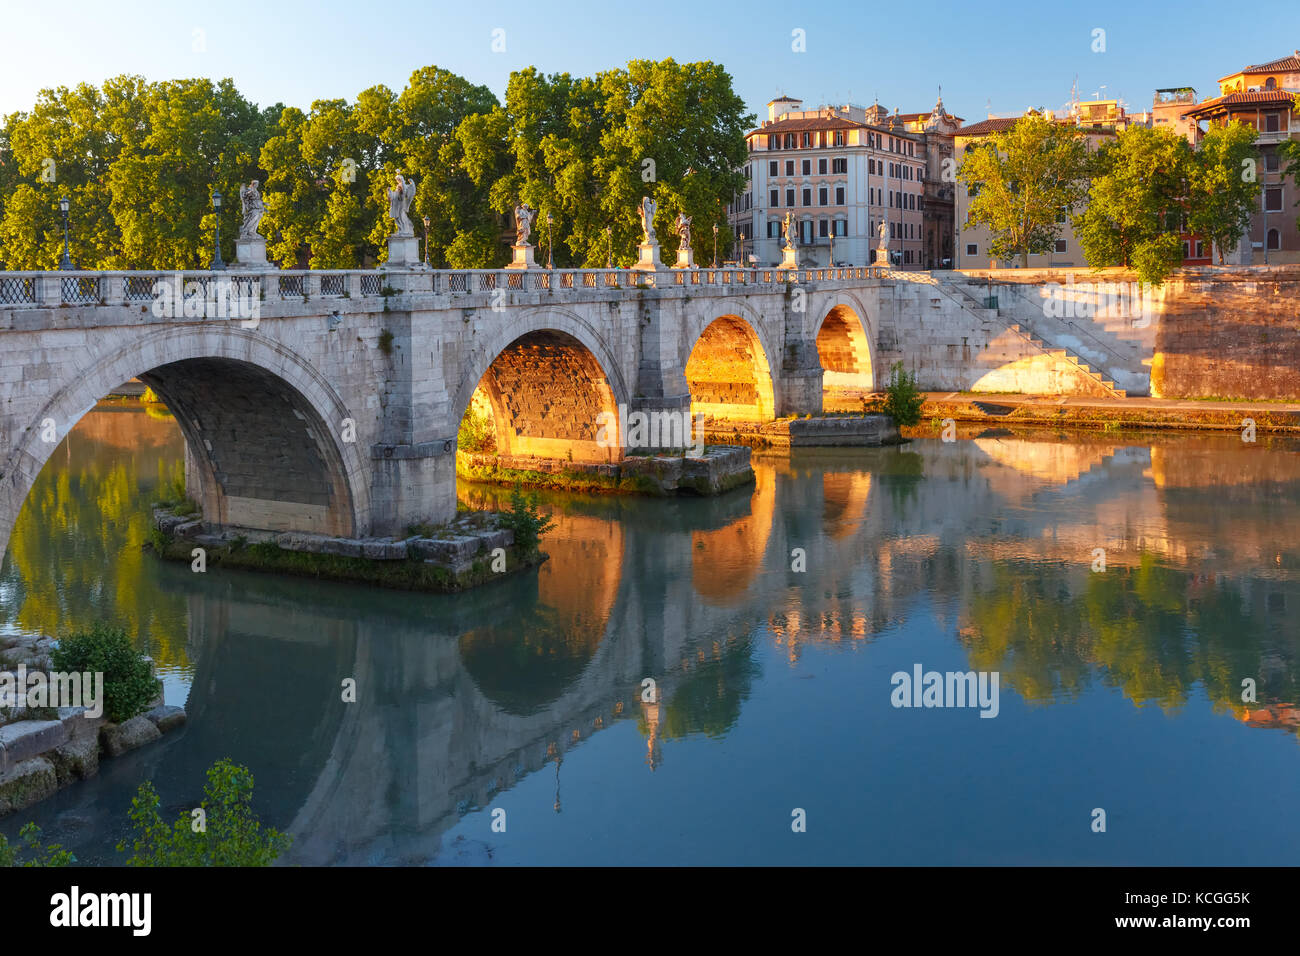 Saint Angel bridge at sunrise, Rome, Italy. - Stock Image